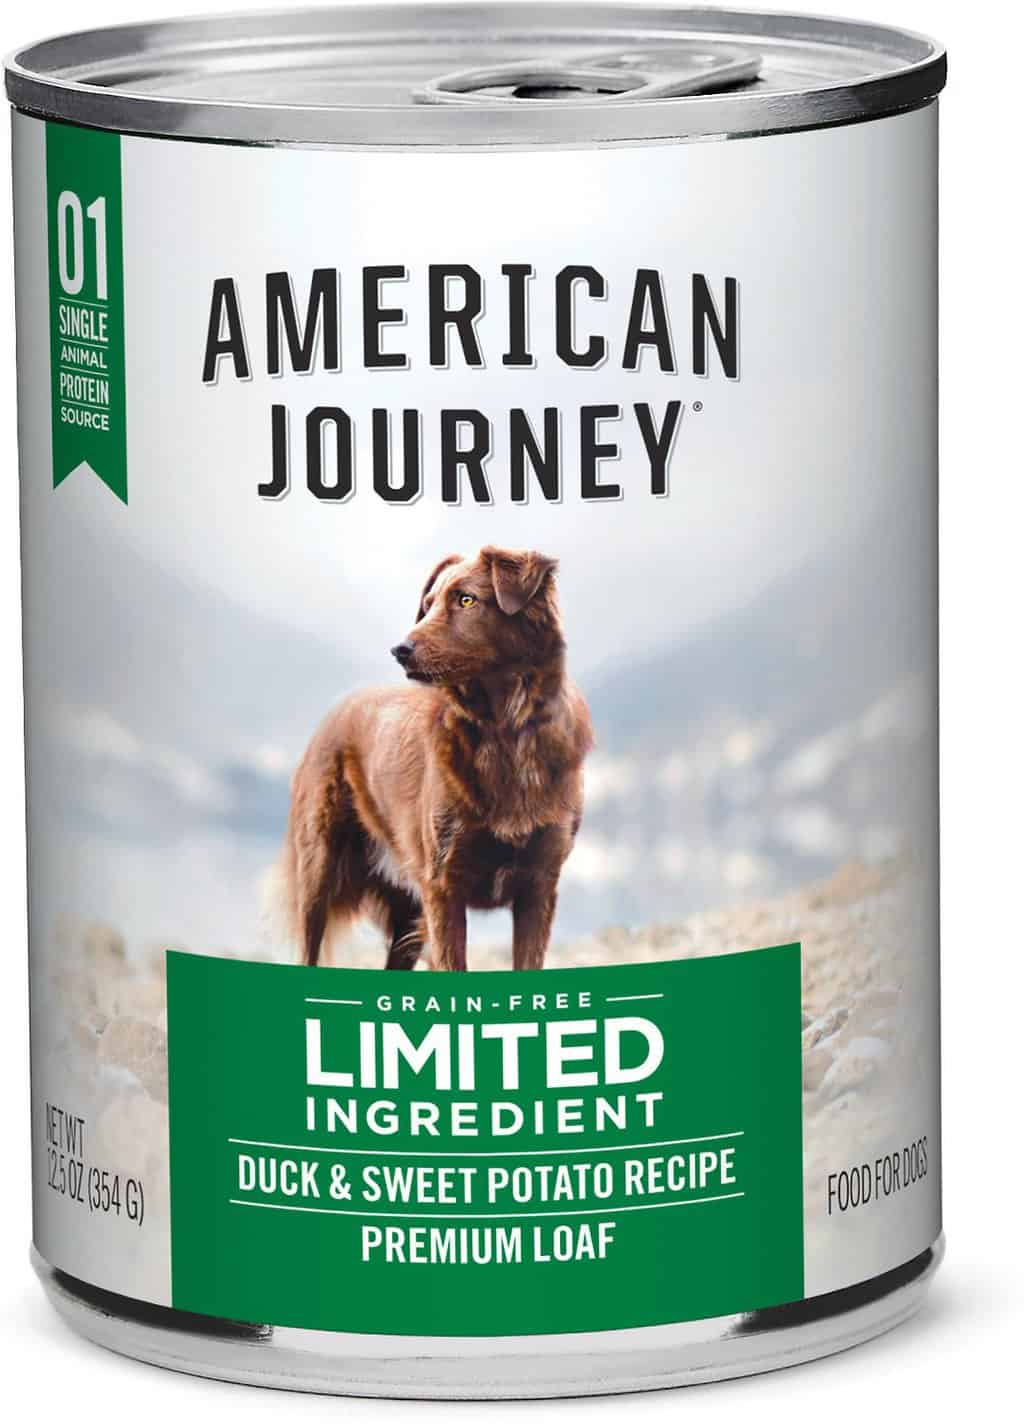 10 Best & Healthiest Dog Food For Rottweilers in 2020 23